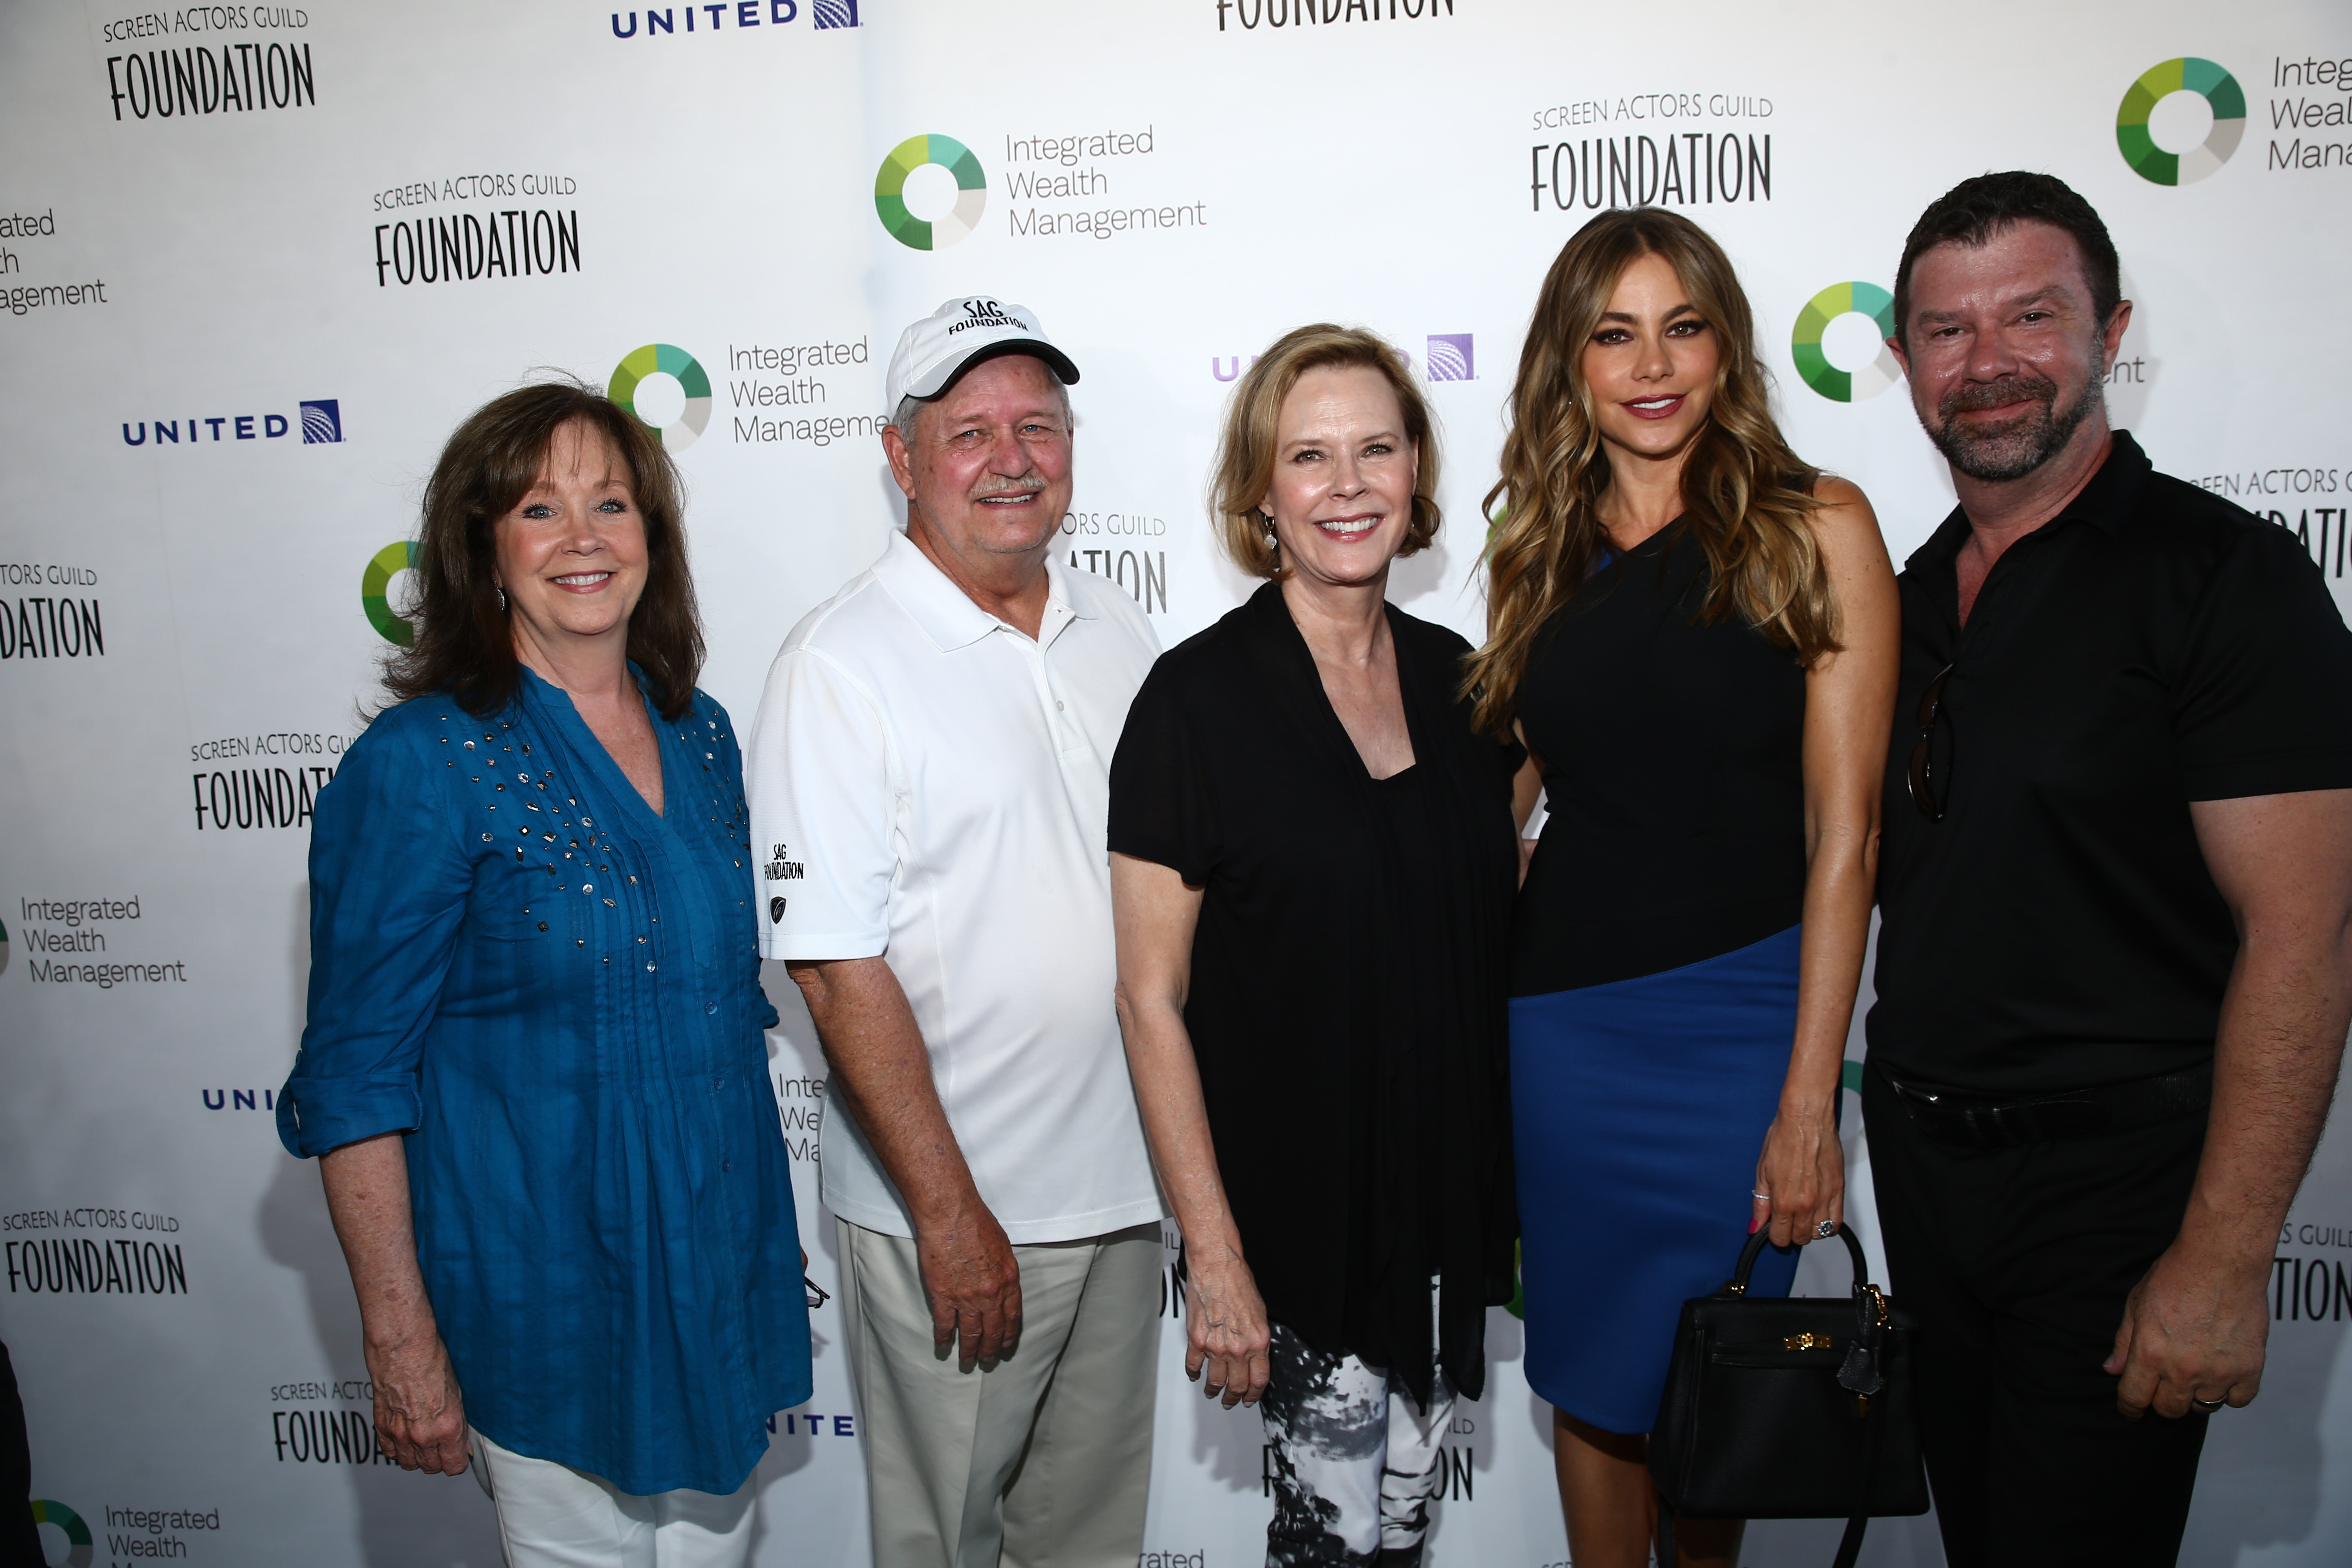 SAG Foundation President Cyd Wilson, SAG Foundation board member Dave Hutton, SAG Foundation President JoBeth Williams, Actress Sofia Vergara and Presenting Sponsor Jim Casey attend The Screen Actors Guild Foundation's 6th Annual Los Angeles Golf Classic on June 8, 2015 in Burbank, California. (Photo by Mark Davis/Getty Images for The Screen Actors Guild Foundation)